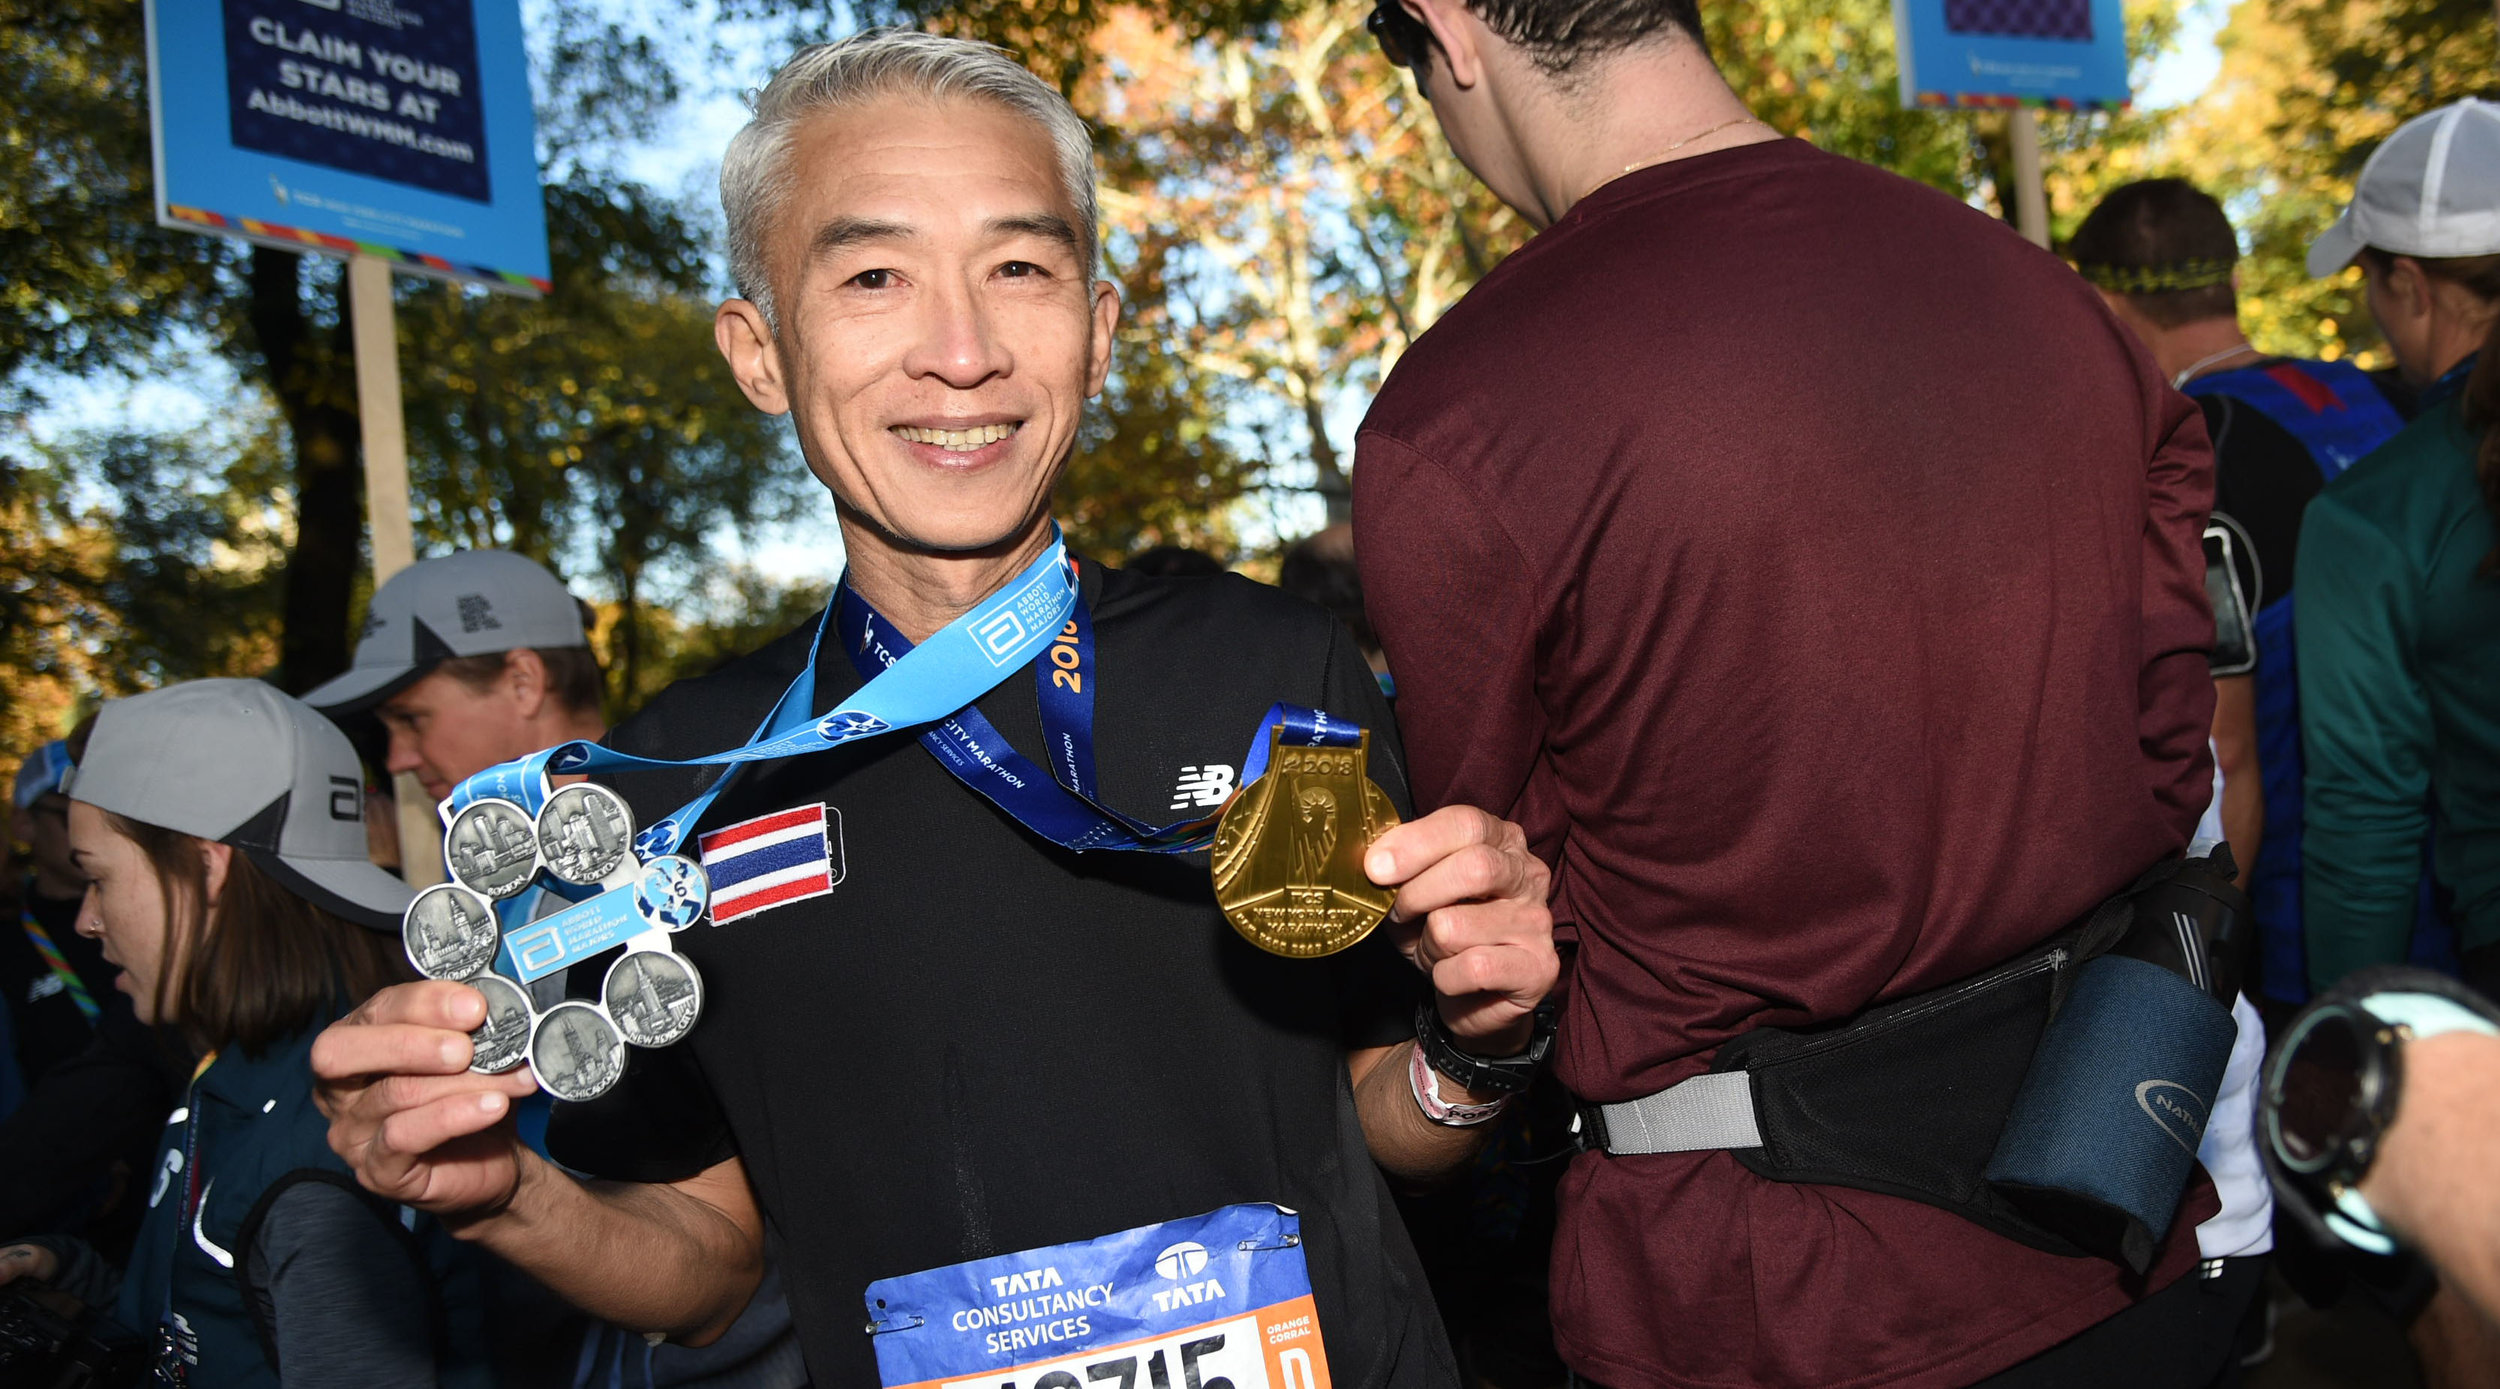 A runner holding his New York City Marathon finisher's medal along with his Abbott World Marathon Majors Six Star Finisher medal